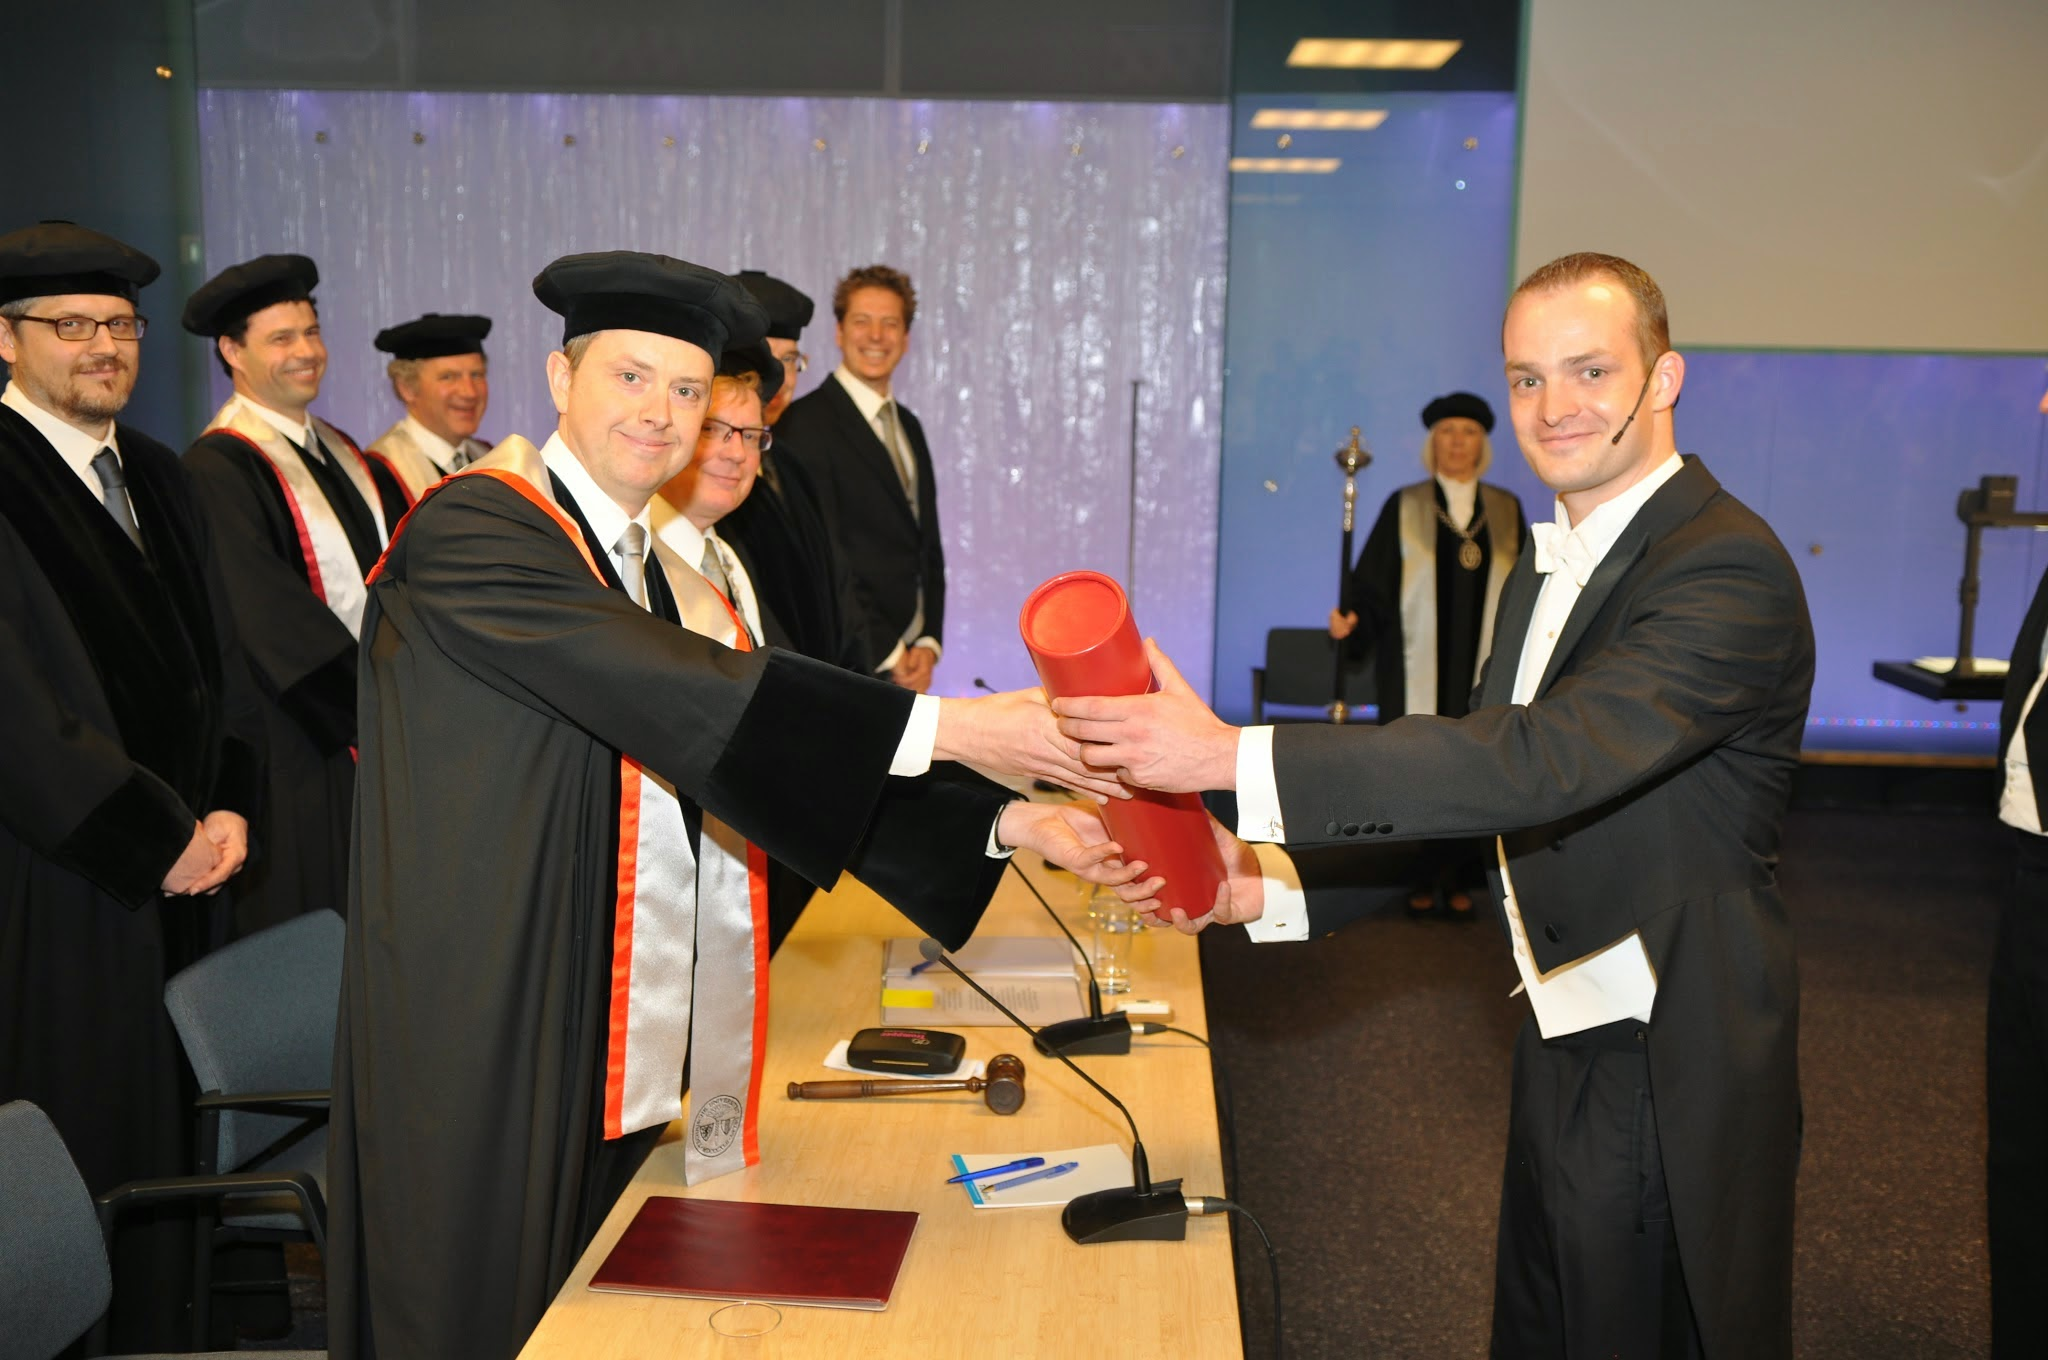 Tu delft phd thesis latex